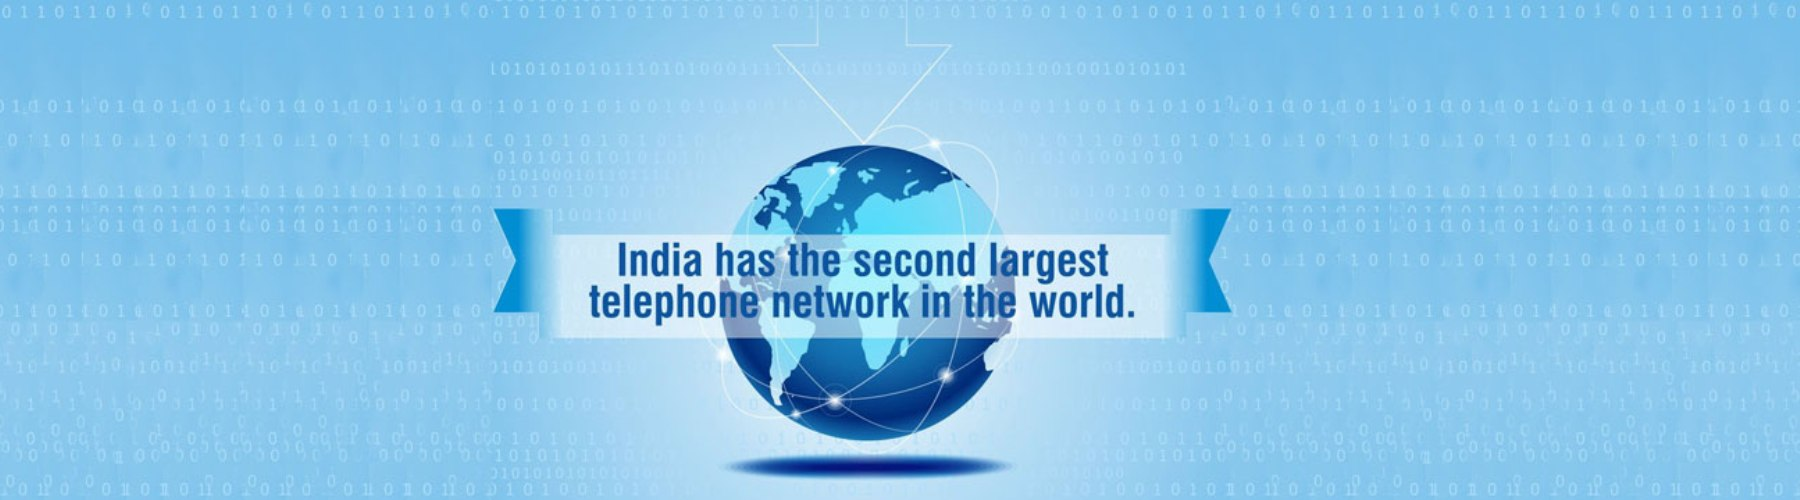 India has Second Largest Telephone Network in India